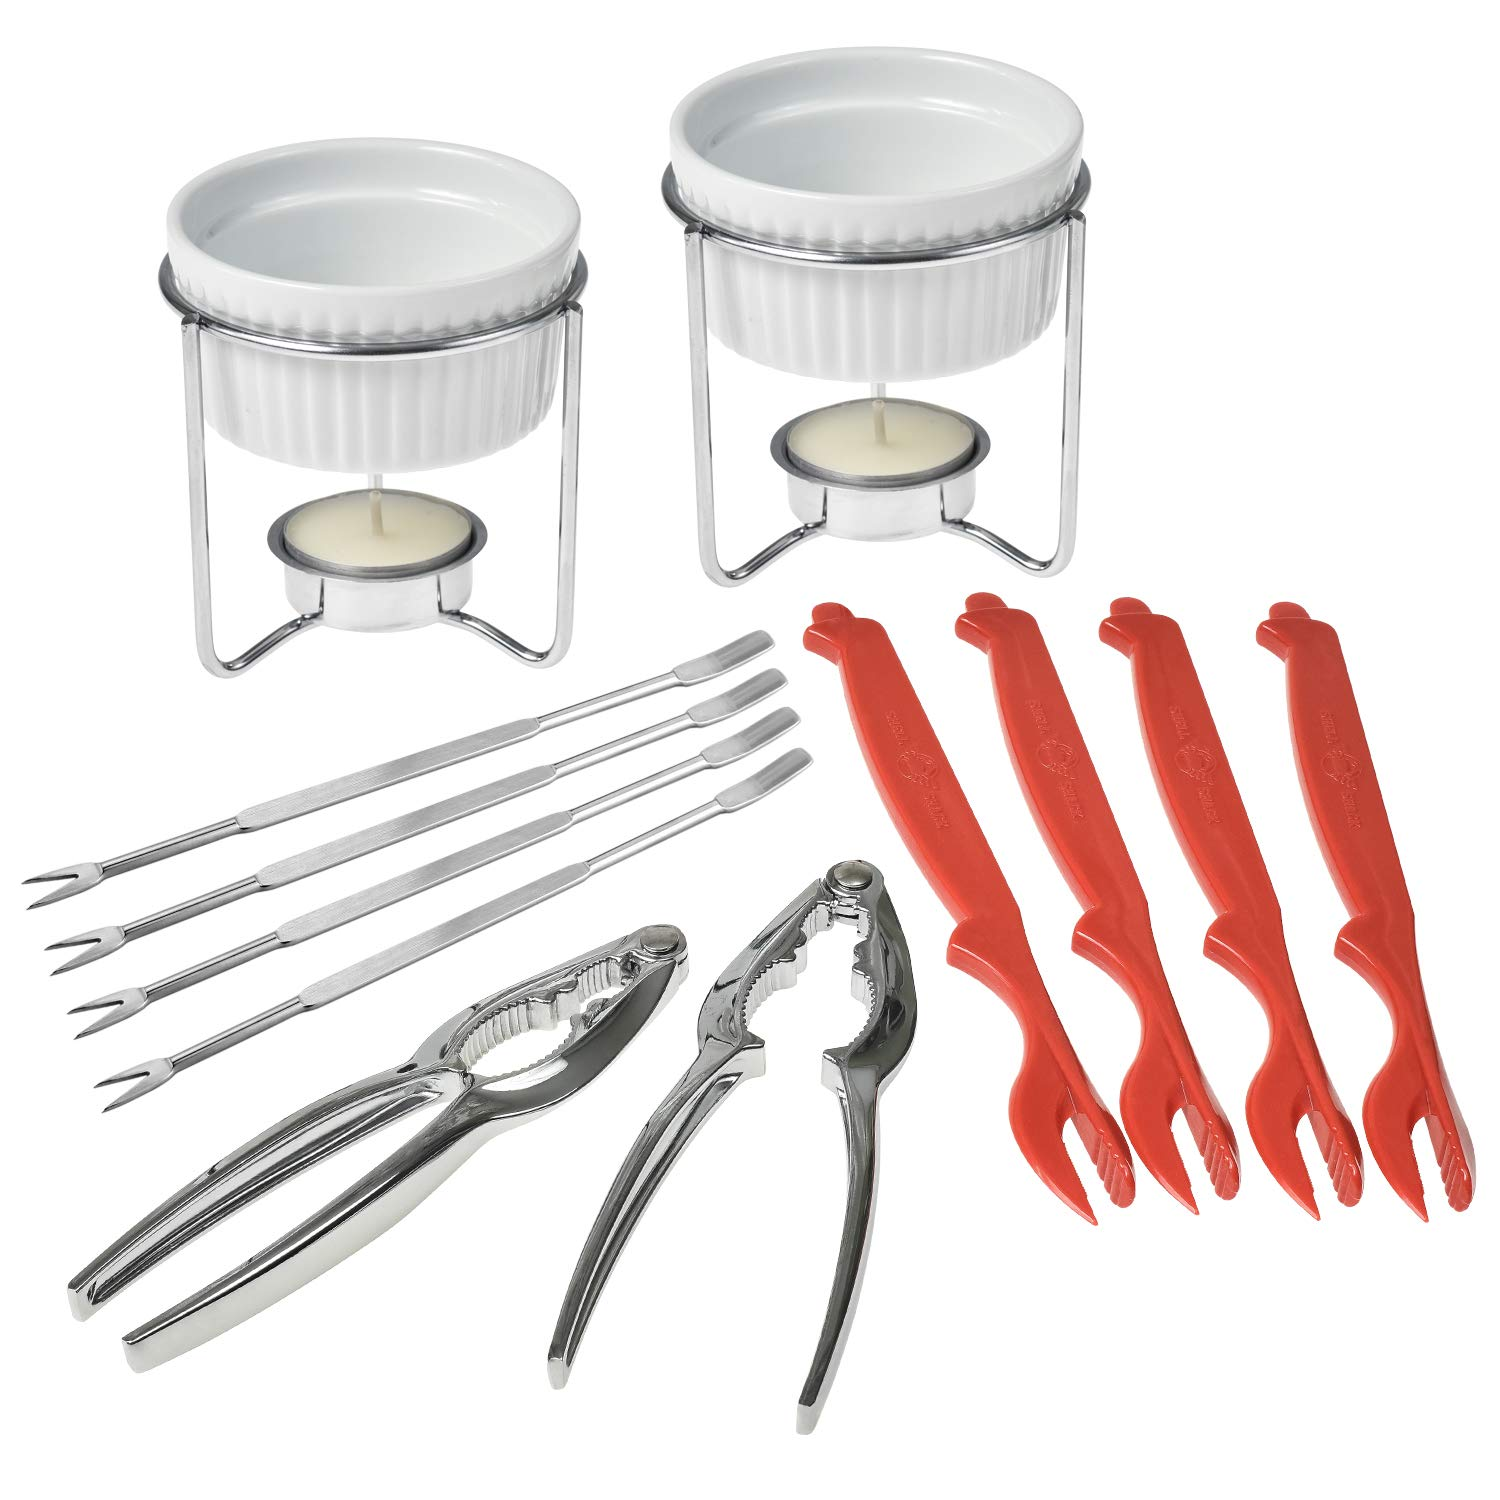 Crabaholik Seafood Tools Set: Ultimate Crab Utensils Set of 2 Lobster Crackers + 2 Ceramic Butter Warmers + 4 Lobster Knives + 4 Crab Forks  Stylish & Heavy-Duty Seafood Lovers